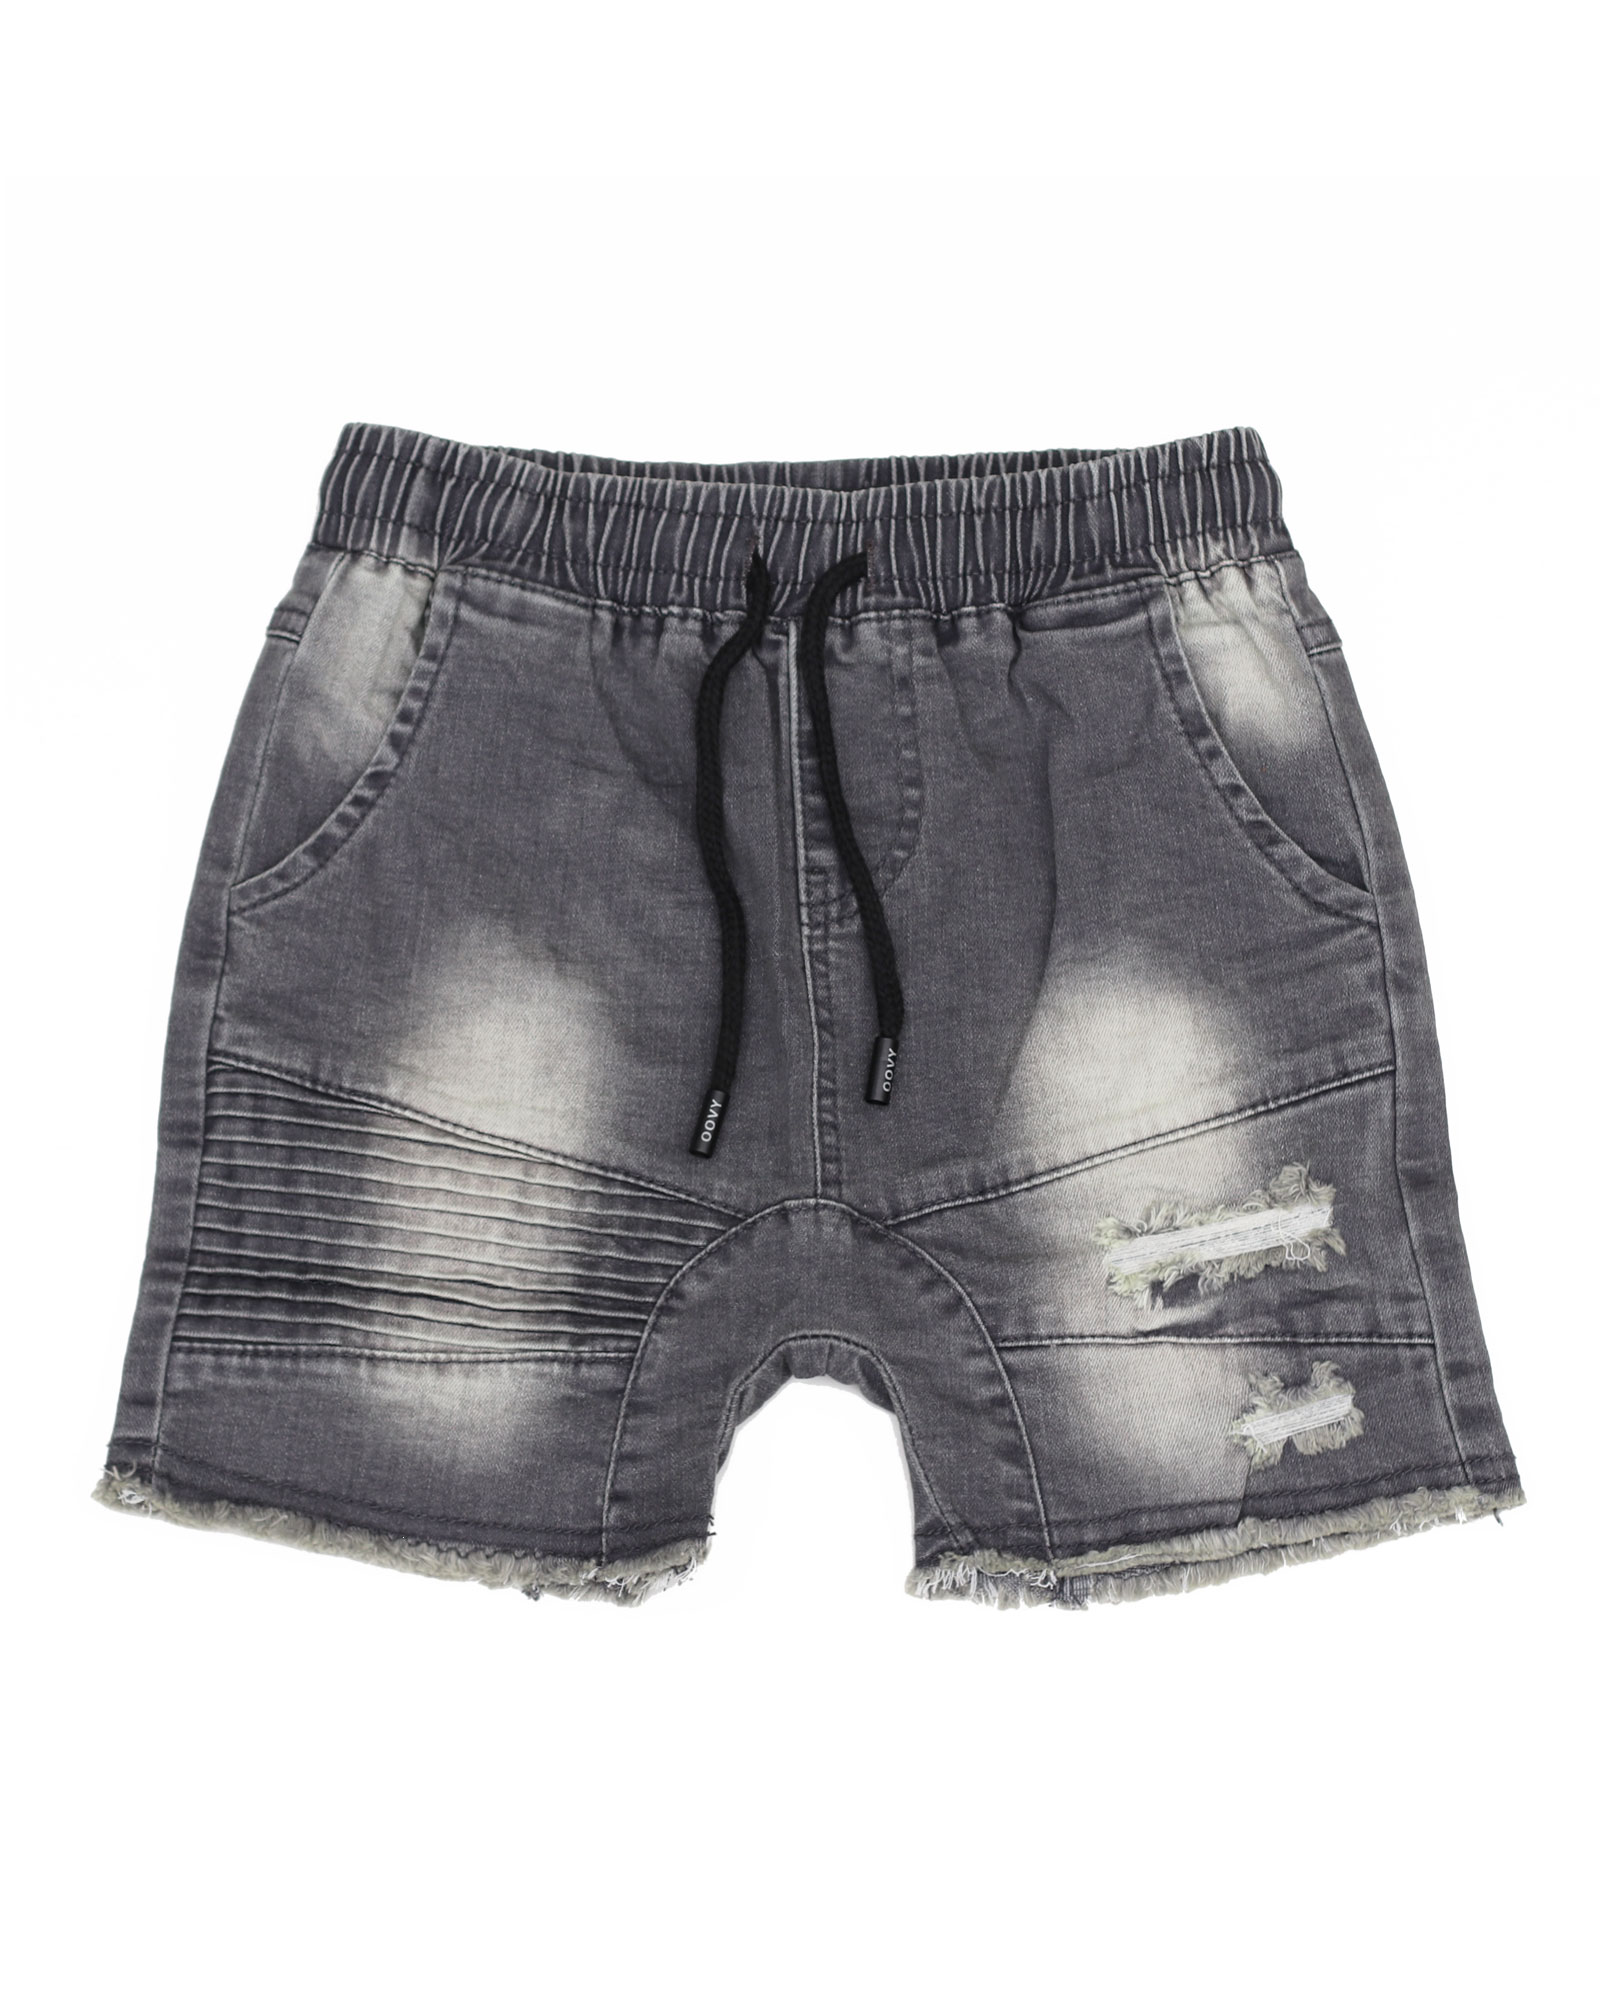 OOVY Kids Grey Stone Wash Denim Shorts